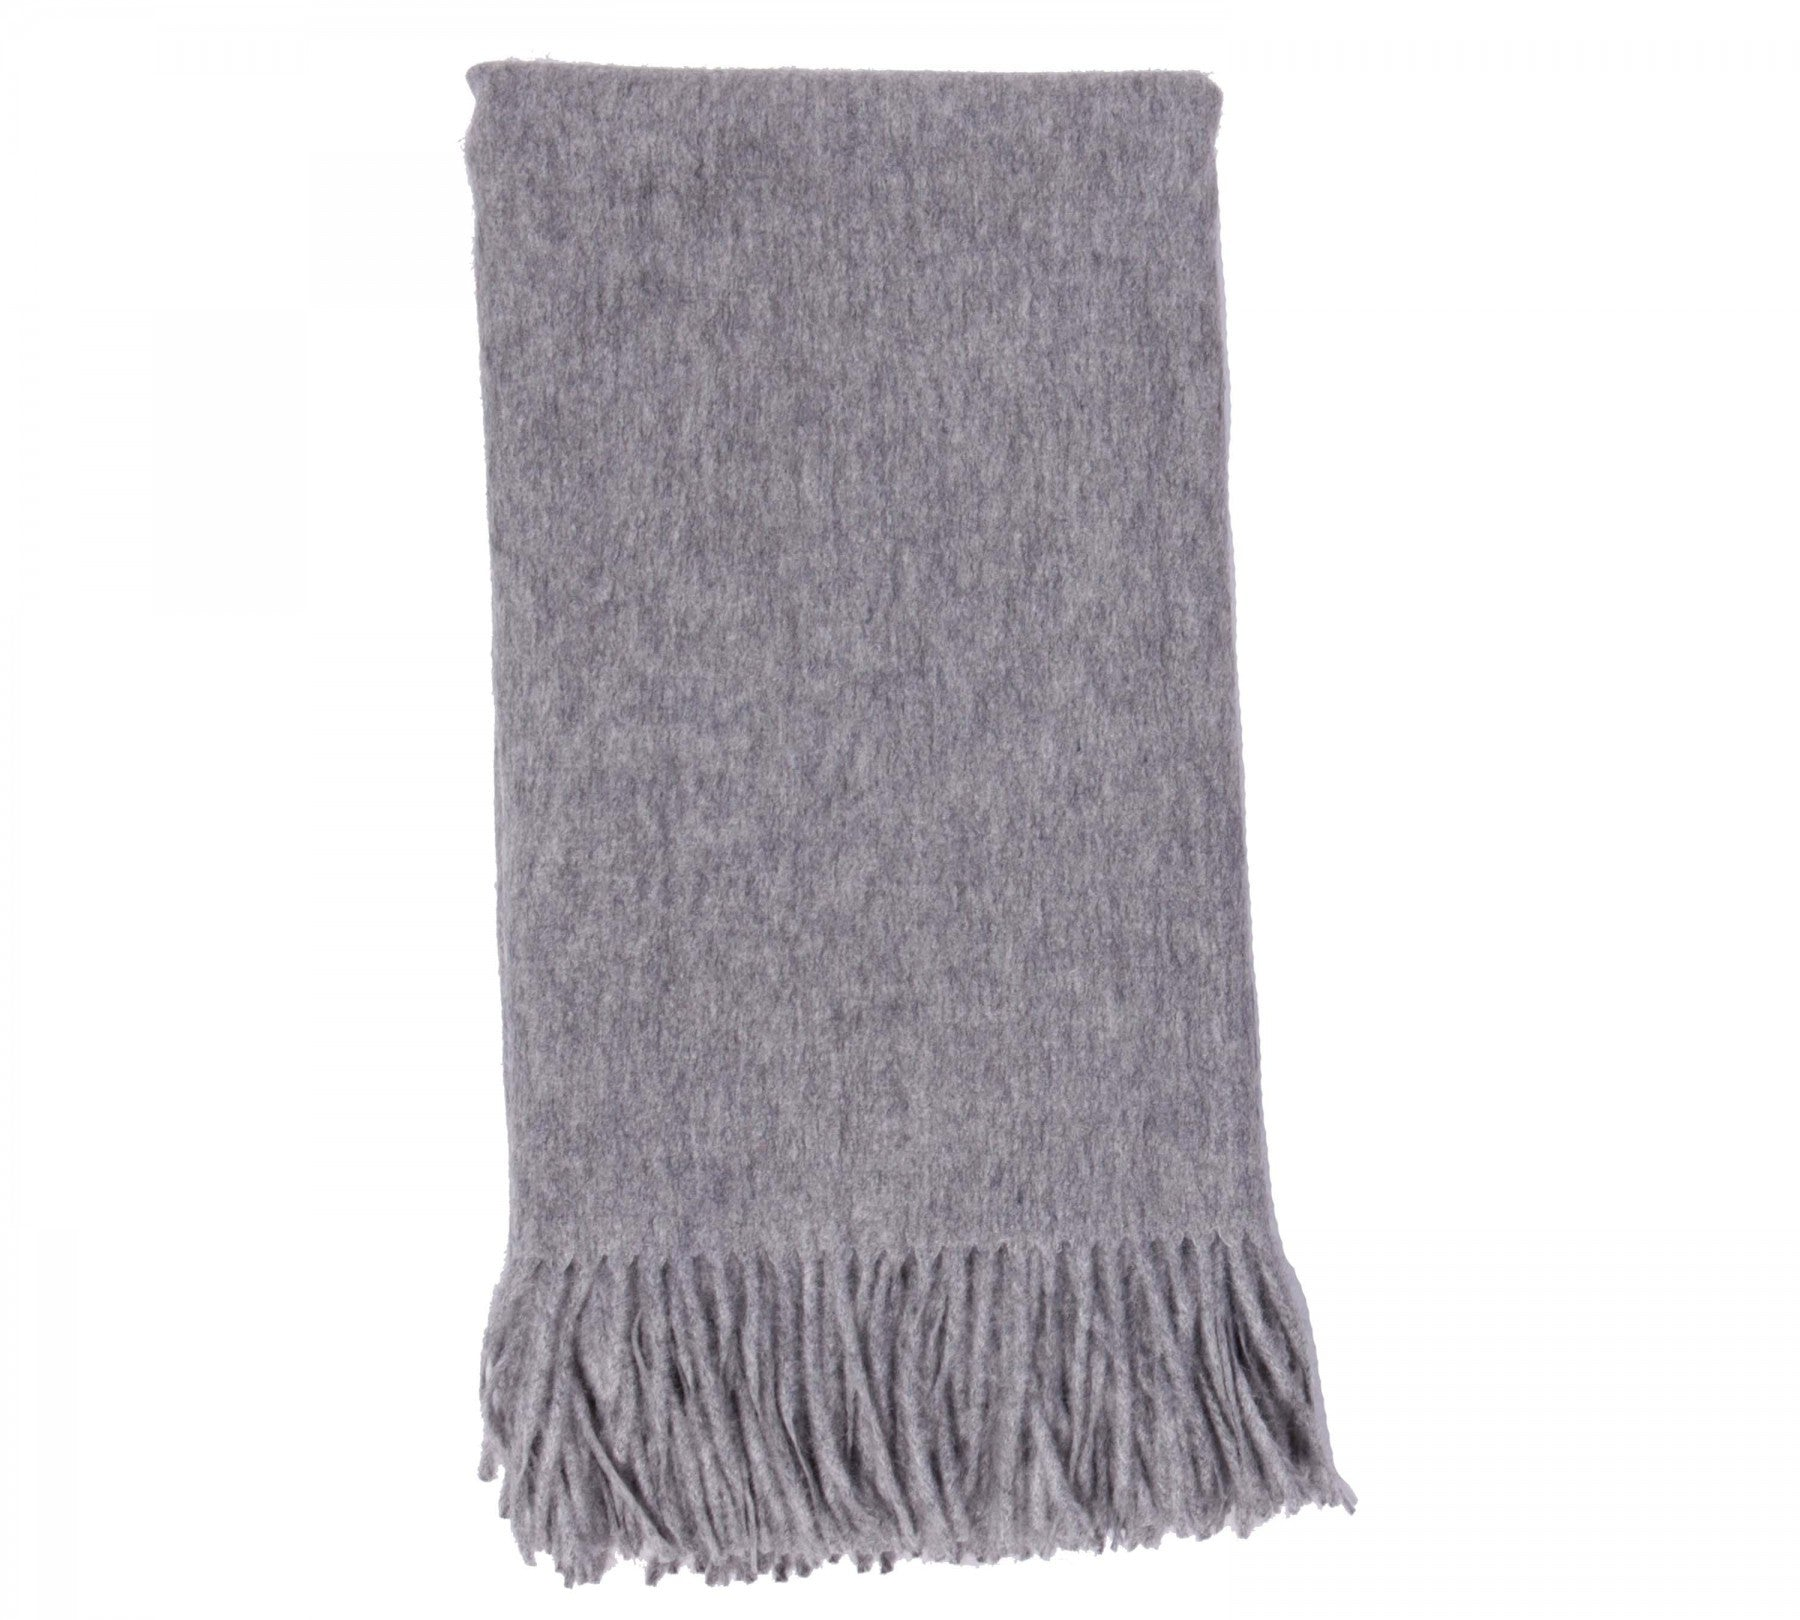 Alashan Merino / Cashmere Plain Weave Throw - Ash